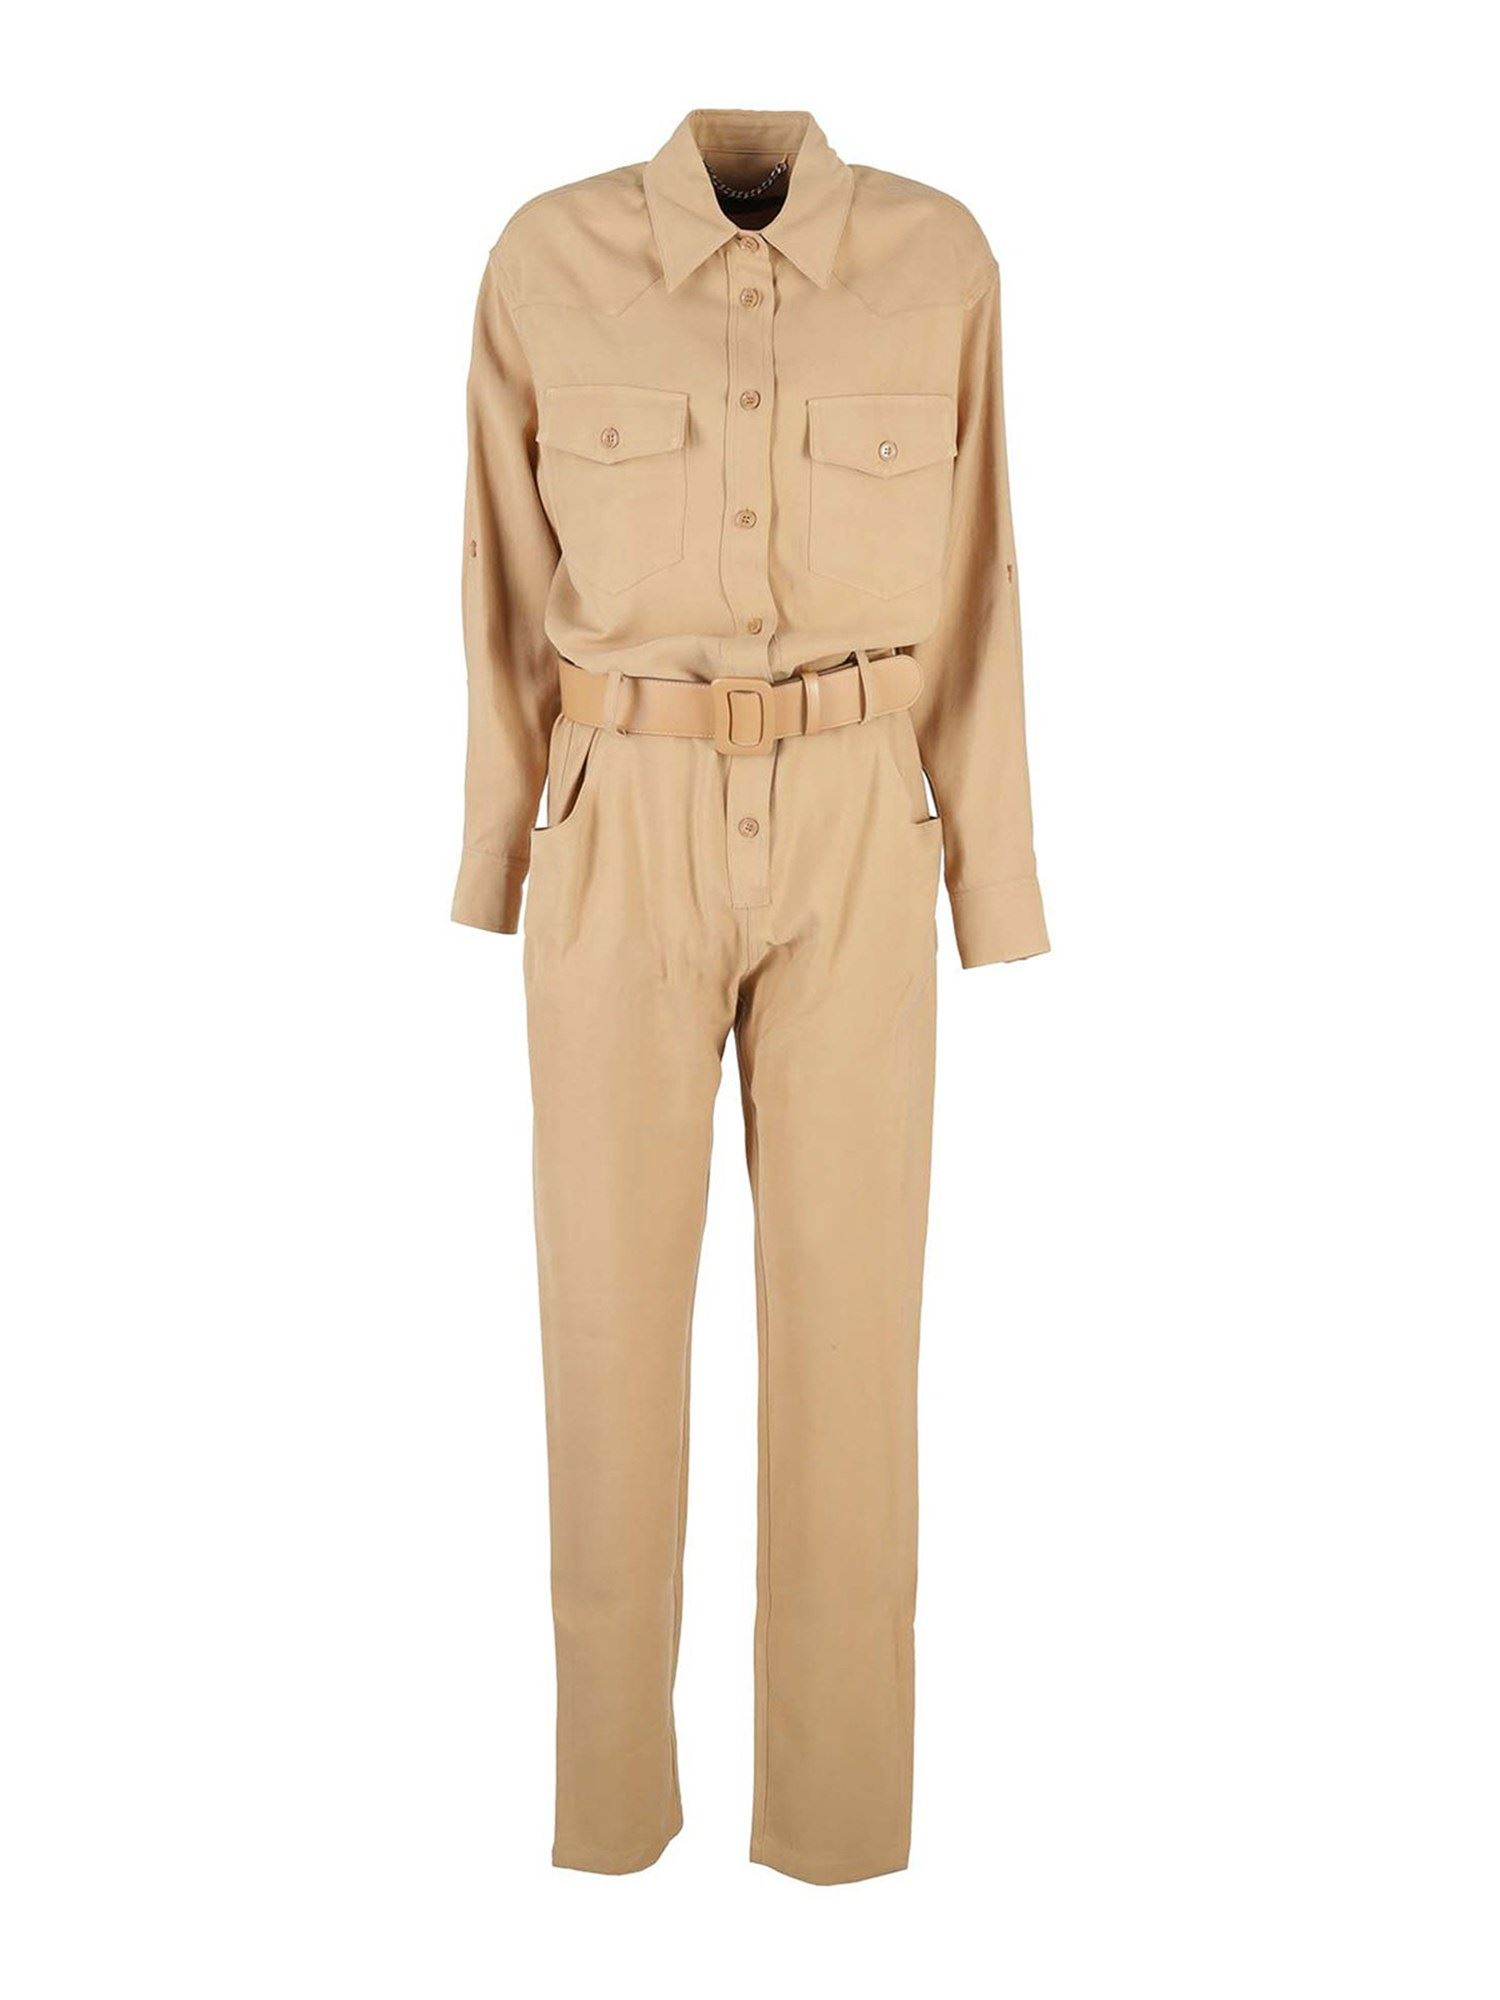 Federica Tosi VISCOSE JUMPSUIT IN BISCOTTO COLOR